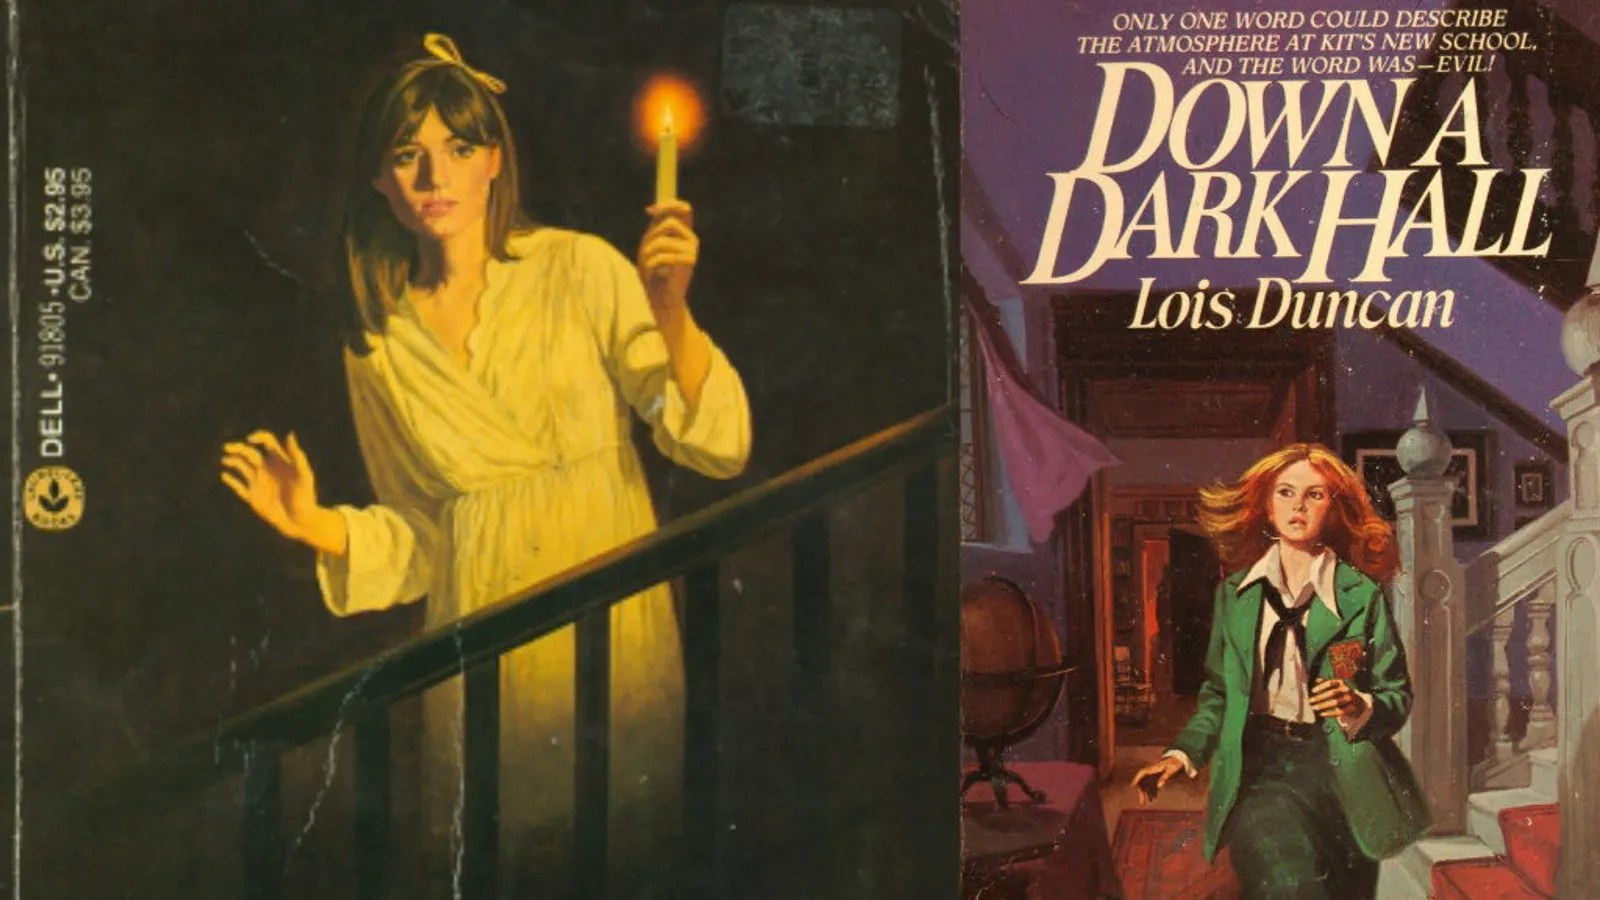 Lois Duncan S Down A Dark Hall Is About The Terror Of